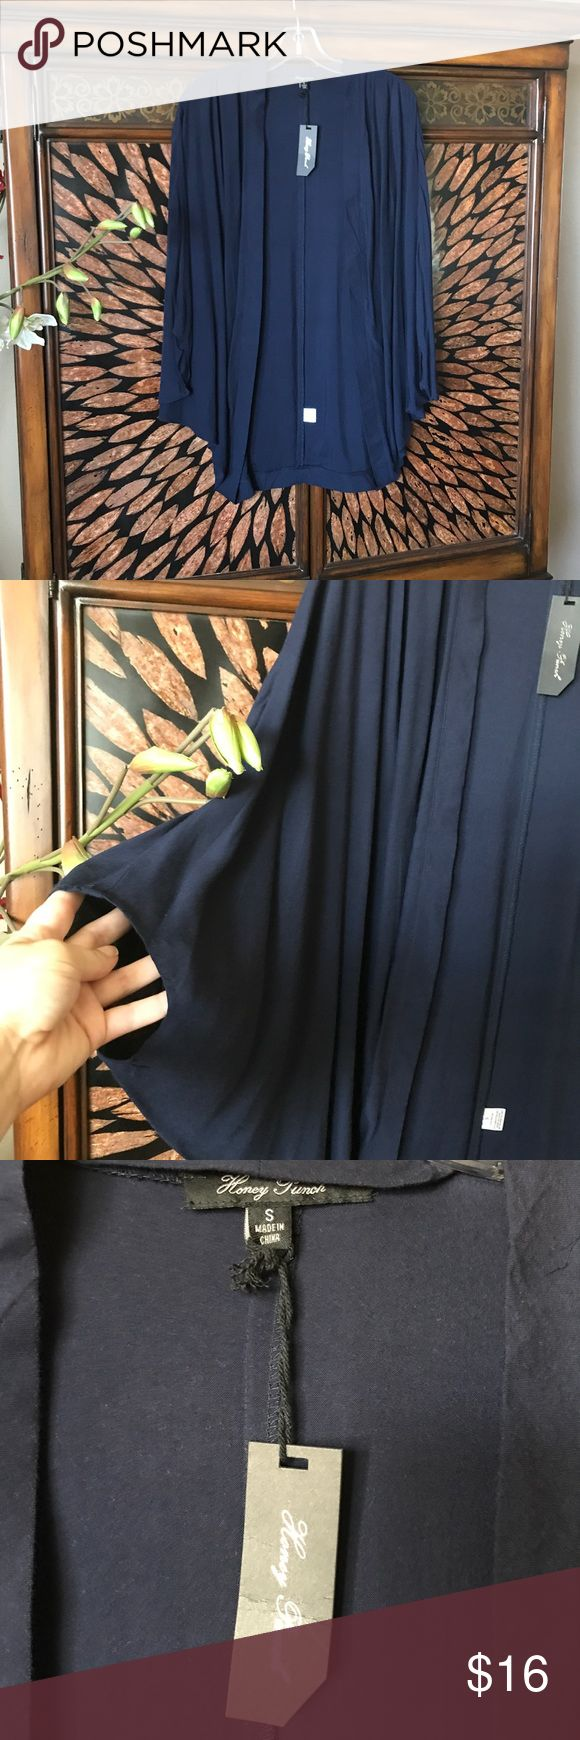 Kimono Navy Blue kimono. Great over tanks or tees for work. Flowy arms. Covers butt. Never worn. Super cute and casual. Honey Punch Sweaters